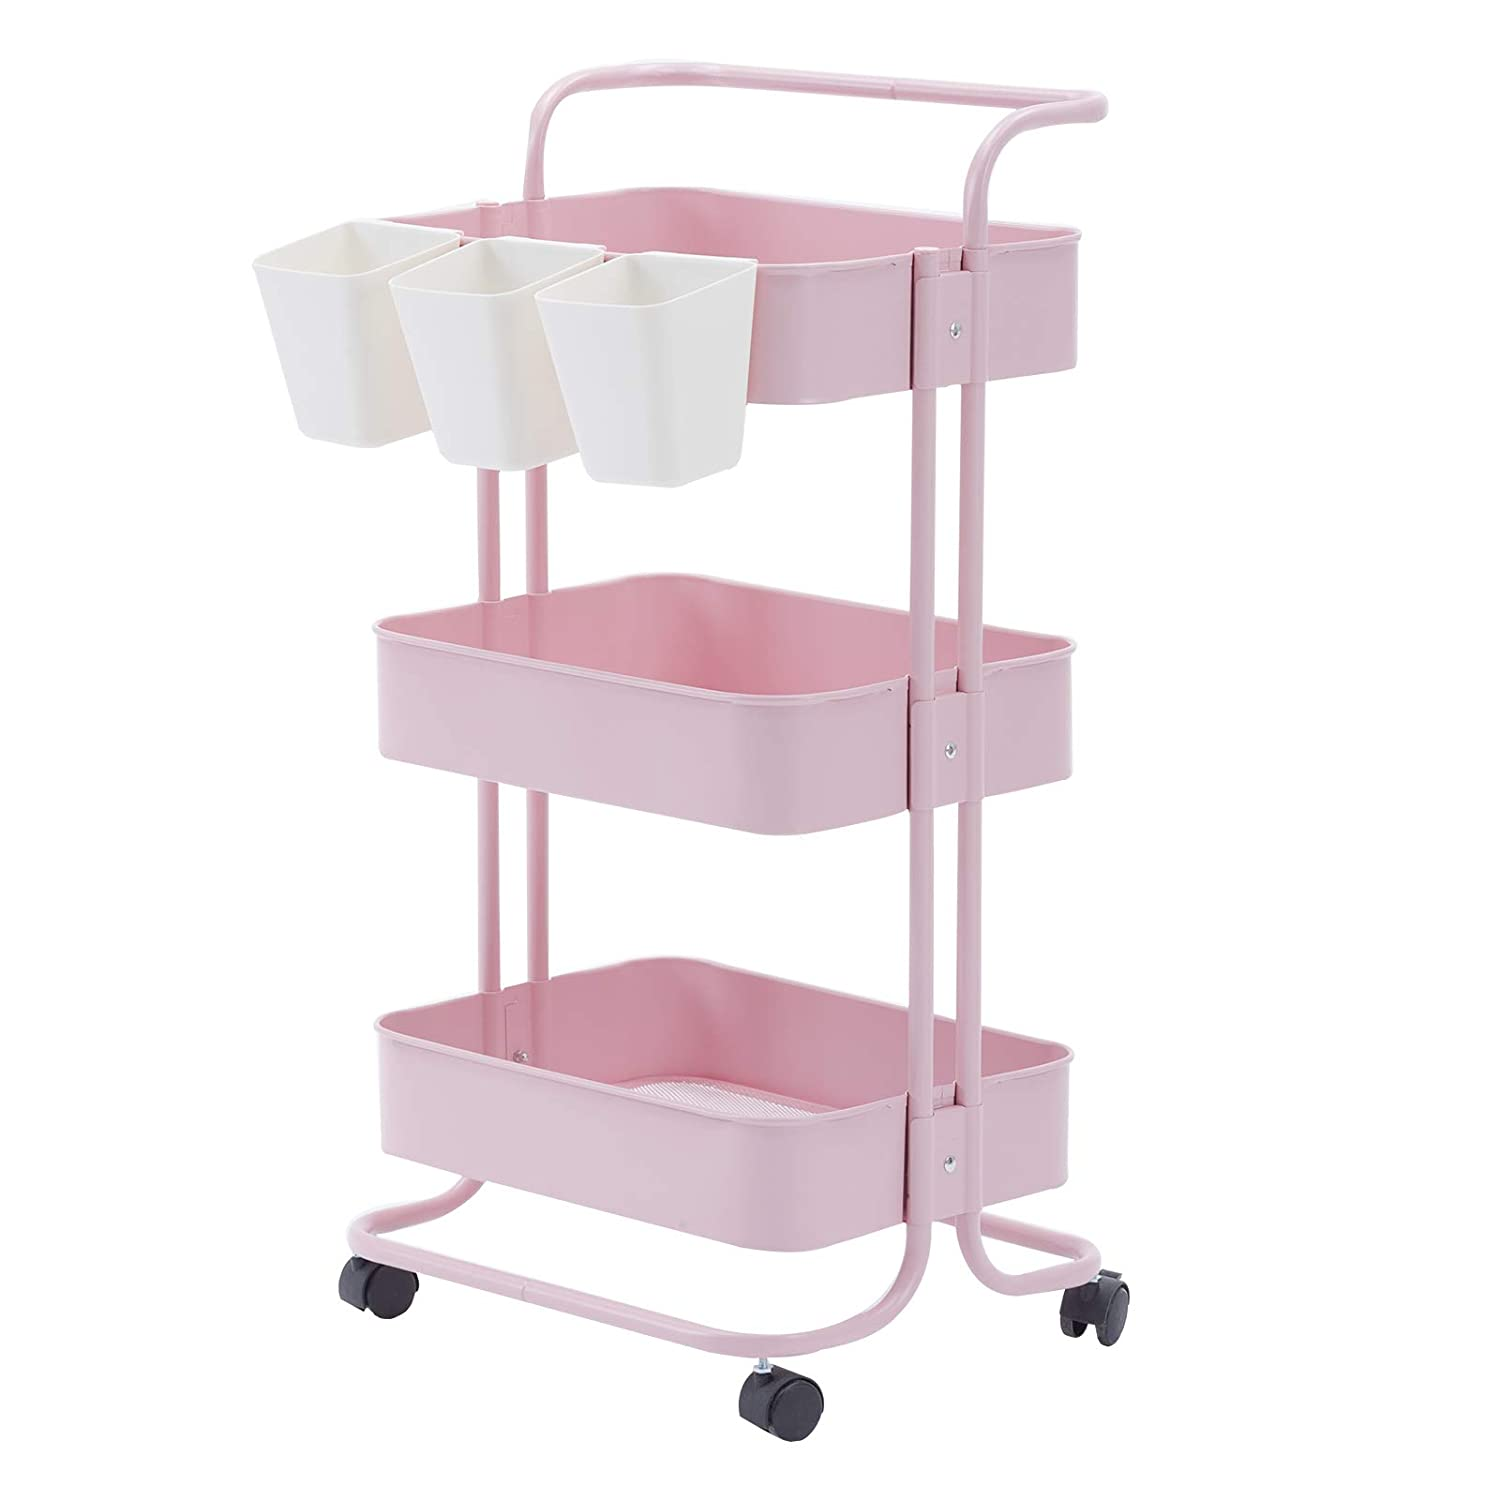 Artechworks 3-Tier Metal Storage Utility Rolling Cart with Handles Mesh Basket and Wheels and Extra Storage Accessories for Bathroom, Kitchen, Living Room,Office Pink